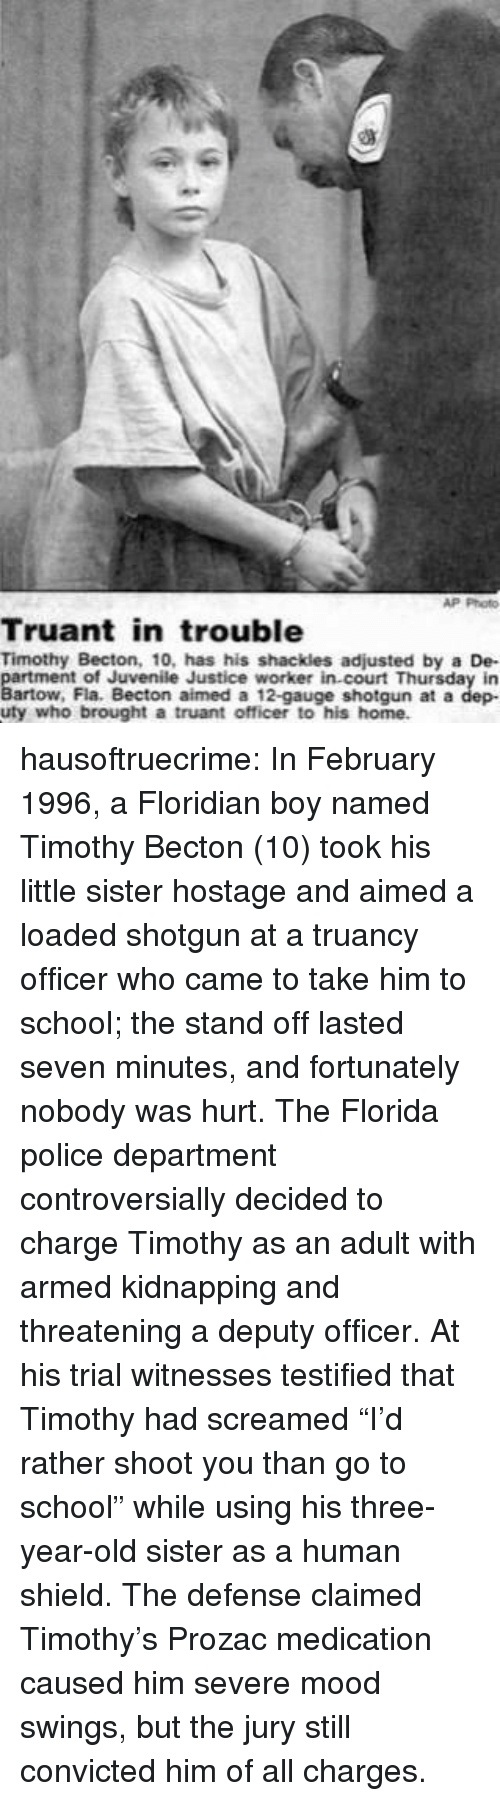 """Juvenile: AP Photo  Truant in trouble  Timothy Becton, 10, has his shackles adjusted by a De-  rtment of Juvenile Justice worker in court Thursday in  artow, Fla. Becton aimed a 12-gauge shotgun at a dep-  uty who brought a truant officer to his home hausoftruecrime: In February 1996, a Floridian boy named Timothy Becton (10) took his little sister hostage and aimed a loaded shotgun at a truancy officer who came to take him to school; the stand off lasted seven minutes, and fortunately nobody was hurt.   The Florida police department controversially decided to charge Timothy as an adult with armed kidnapping and threatening a deputy officer. At his trial witnesses testified that Timothy had screamed """"I'd rather shoot you than go to school"""" while using his three-year-old sister as a human shield. The defense claimed Timothy's Prozac medication caused him severe mood swings, but the jury still convicted him of all charges."""